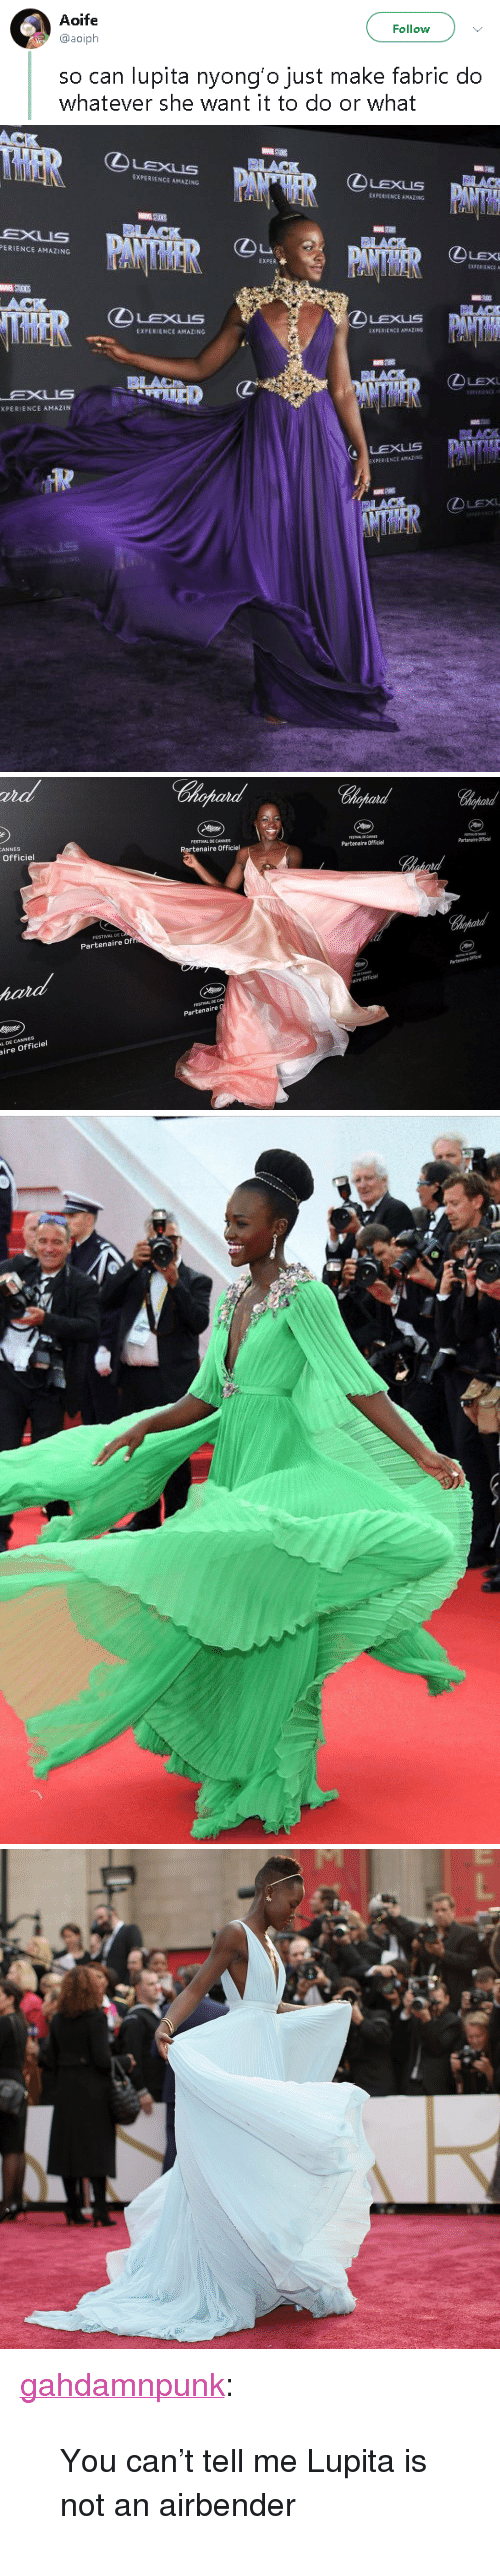 "Amazin: Aoife  @aoiph  Follow  so can lupita nyong'o just make fabric do  whatever she want it to do or what   IXPERIENCE AMAZING  PERIENCE AMAZING  LEX  E XPE  BLAC  ④LExus  LEXUS  鉌HRIENCE AMAZING  LEX  EXUS  XPERIENCE AMAZIN  DLACK  LEXUS   ut  Chopard  ANNES  Officiel  FESTIVAL DE CANNES  Partenaire Officiel  FESTIVAL DE CANNES  Partenaire Officiel  ESTINAL DE CANNES  Partenaire Officiel  FESTIVAL  DE  Partenaire Of  Partenaire Officie  A DE CANNES  aire Officiel  FESTIVAL DE CAN  Partenaire  L DE CANNES  ire Officiel <p><a href=""https://gahdamnpunk.tumblr.com/post/173843017034/you-cant-tell-me-lupita-is-not-an-airbender"" class=""tumblr_blog"">gahdamnpunk</a>:</p><blockquote><p>You can't tell me Lupita is not an airbender<br/></p></blockquote>"